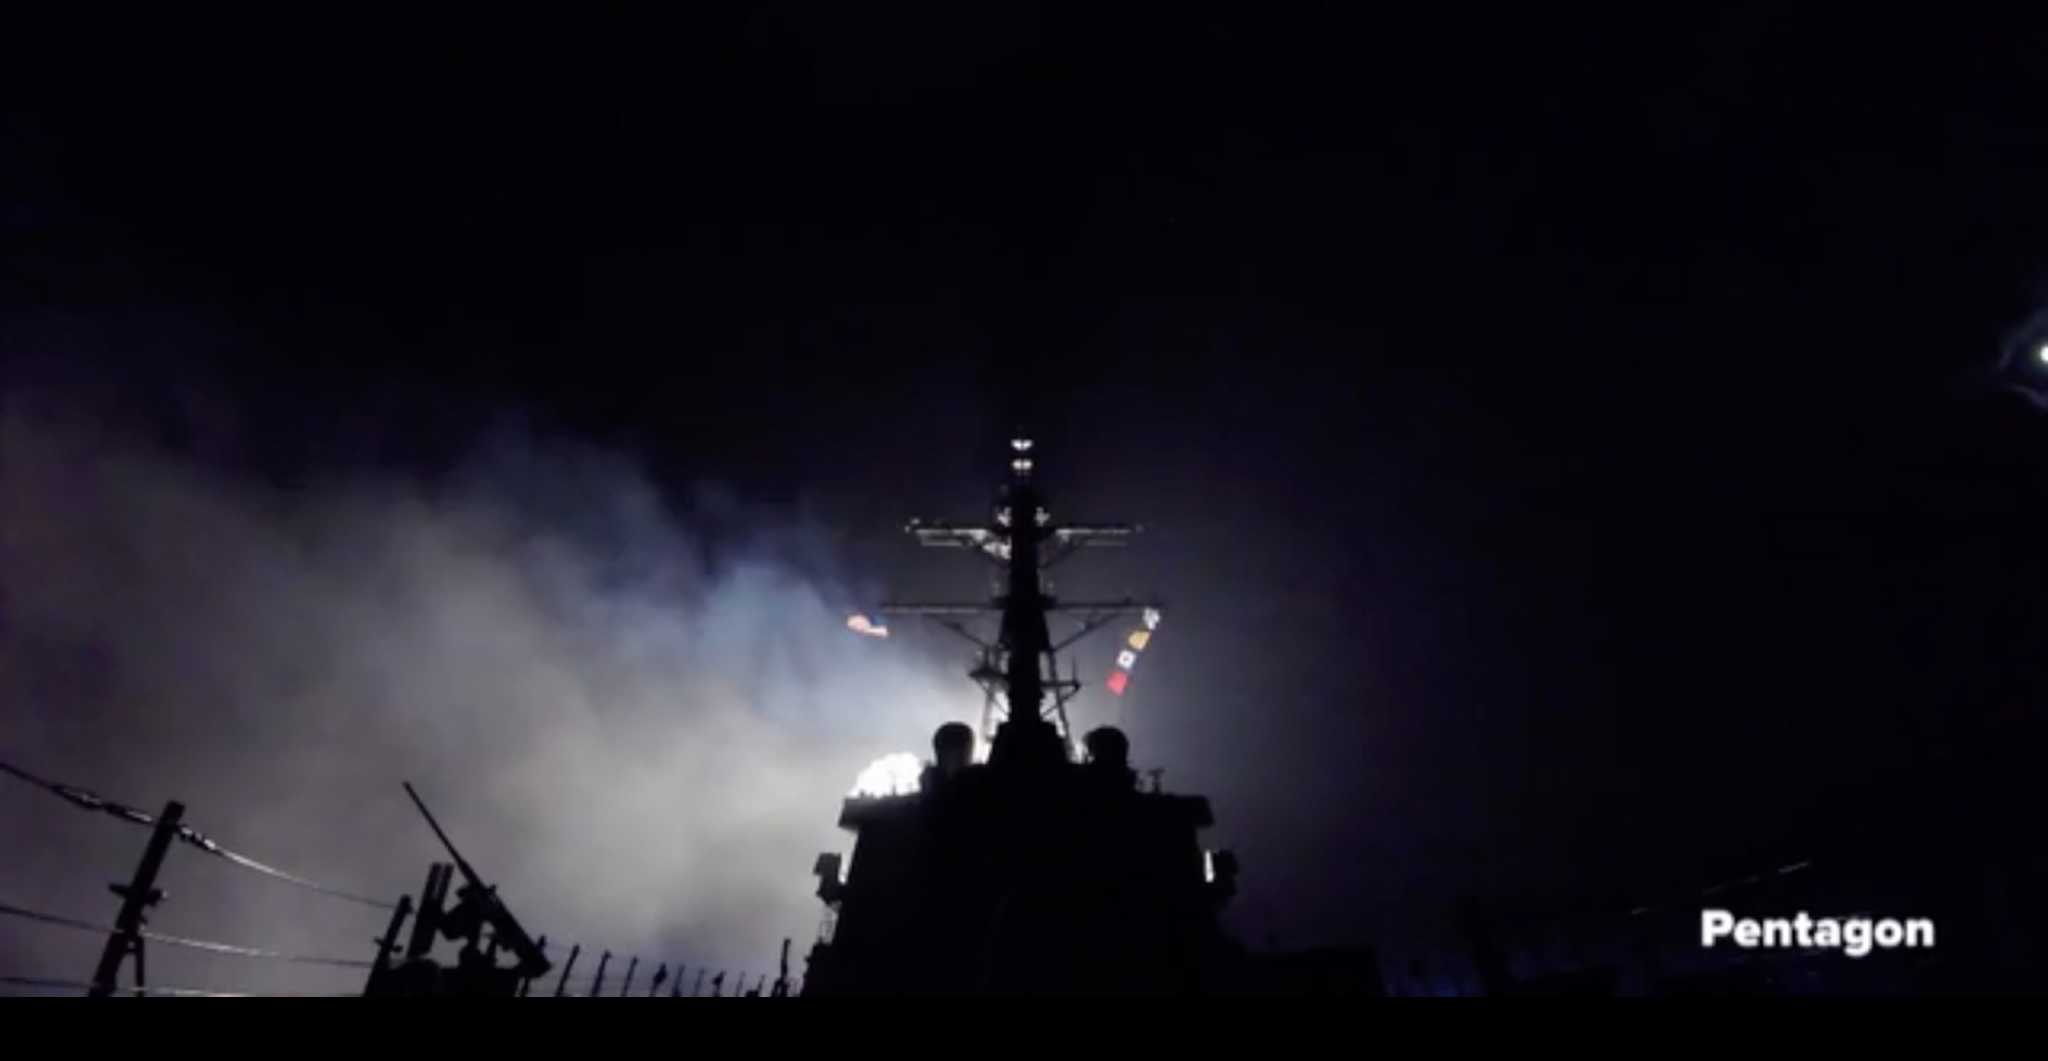 U.S. Navy destroyer launches a cruise missile strike against Syria on April 7, 2017. Courtesy U.S. Navy/ Pentagon.